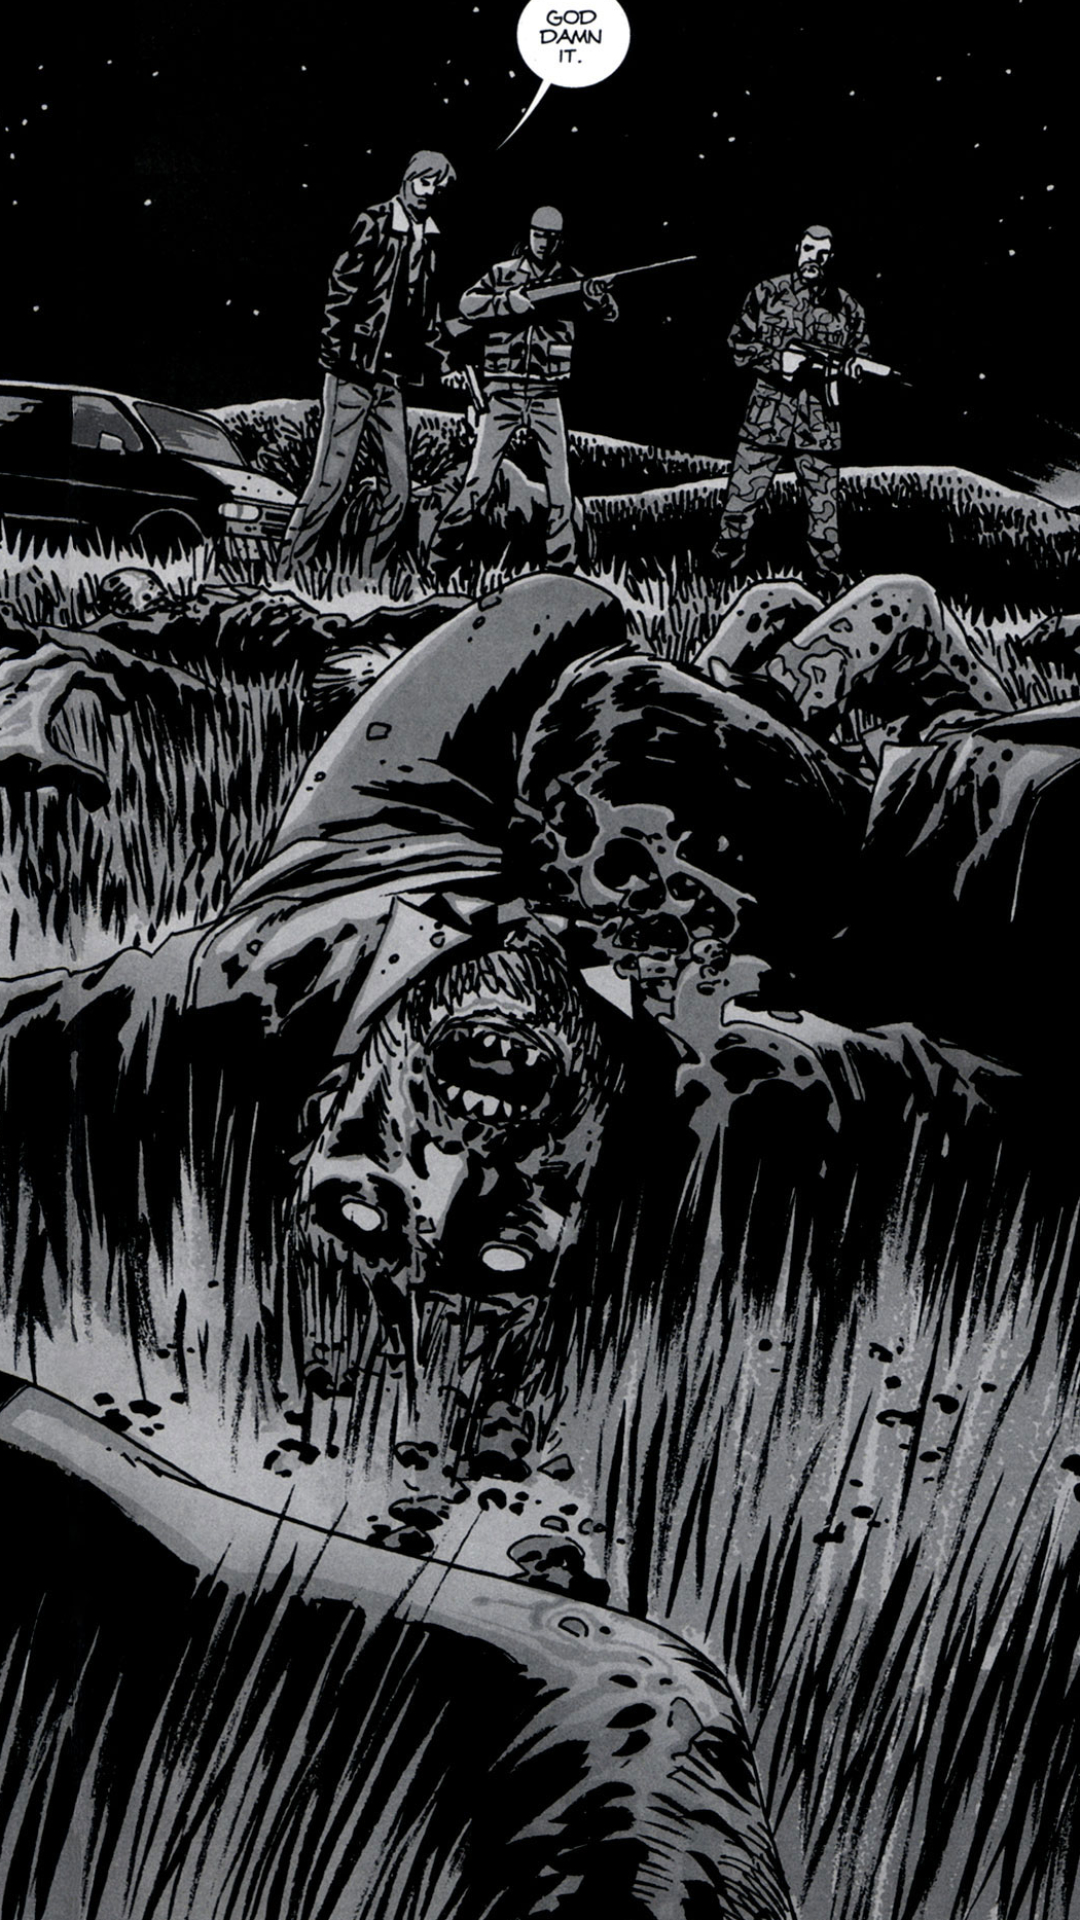 comics/the walking dead (1080x1920) wallpaper id: 672115 - mobile abyss